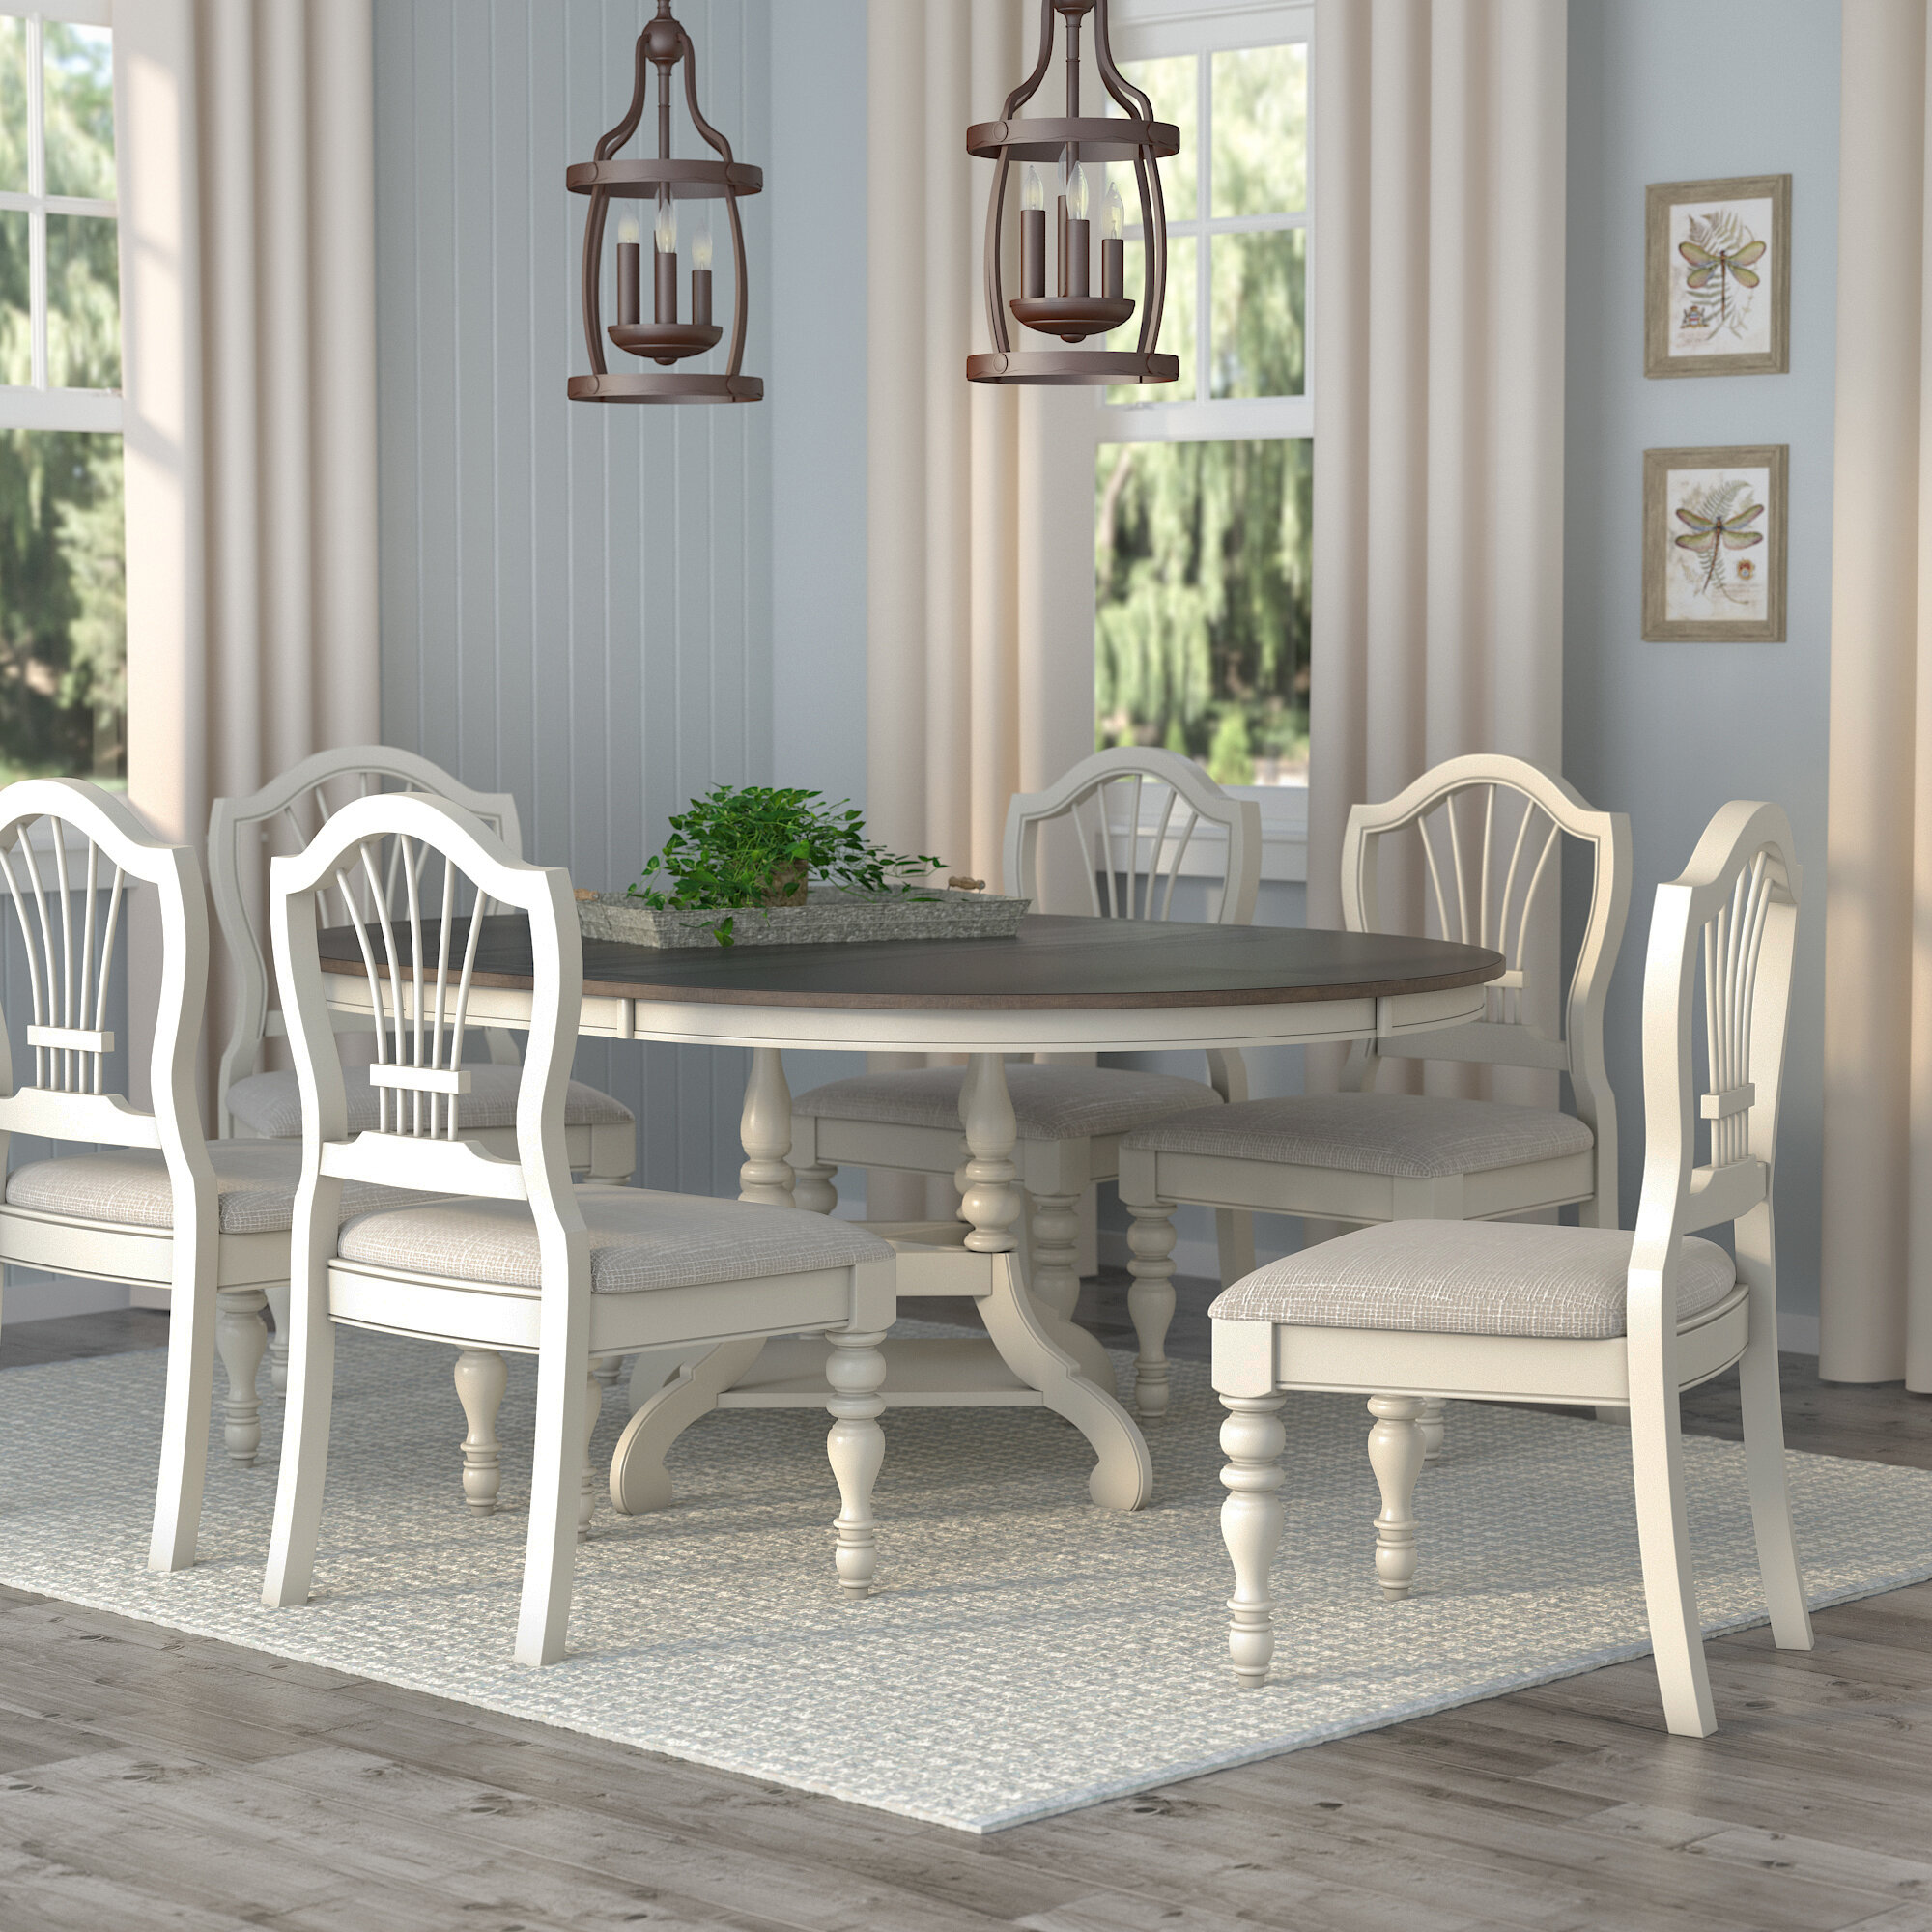 Beau Lark Manor Alise 7 Piece Dining Set U0026 Reviews | Wayfair